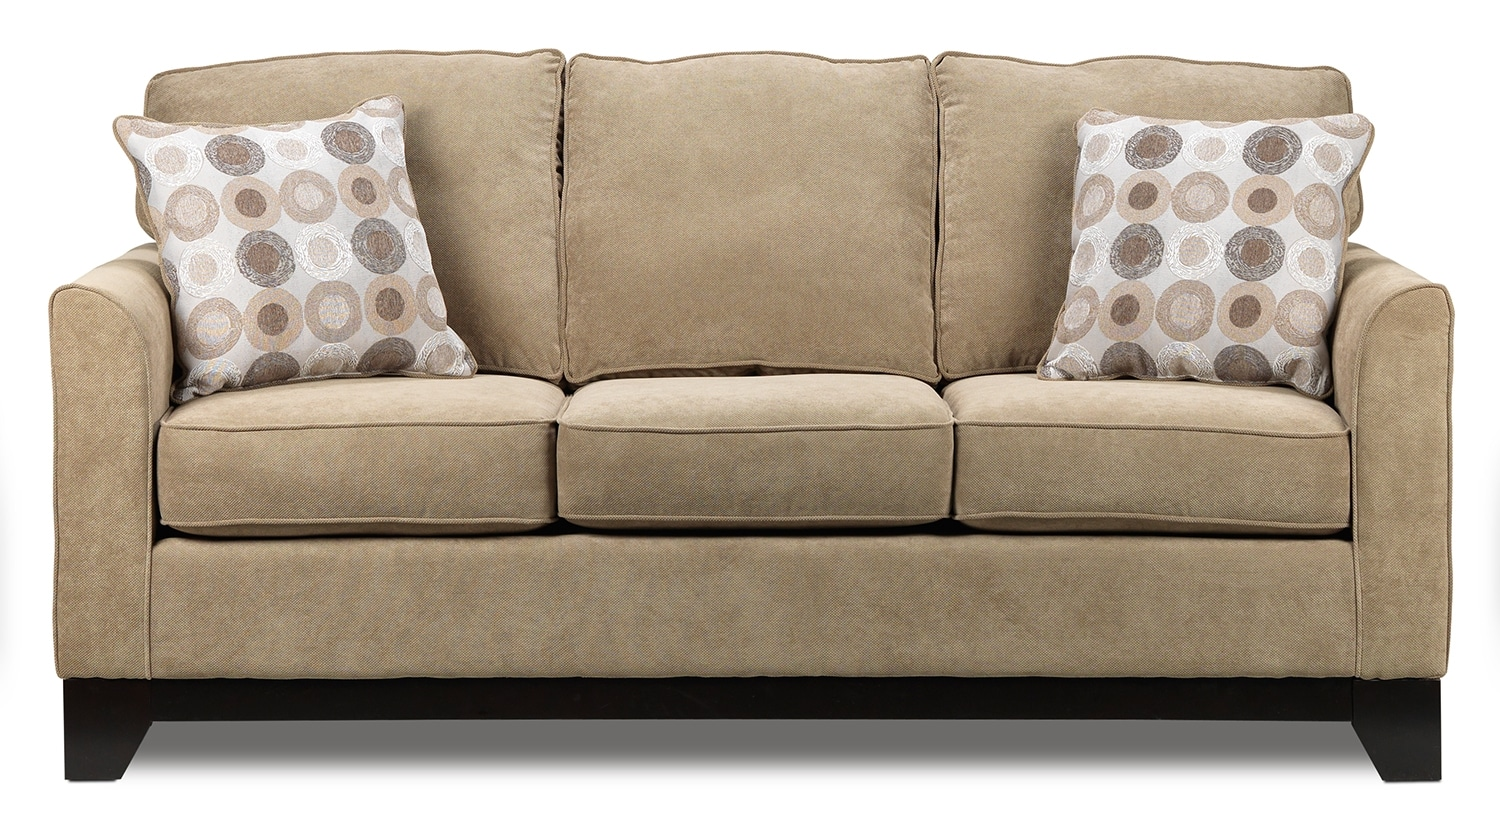 Living Room Furniture - Sand Castle Sofa - Light Brown